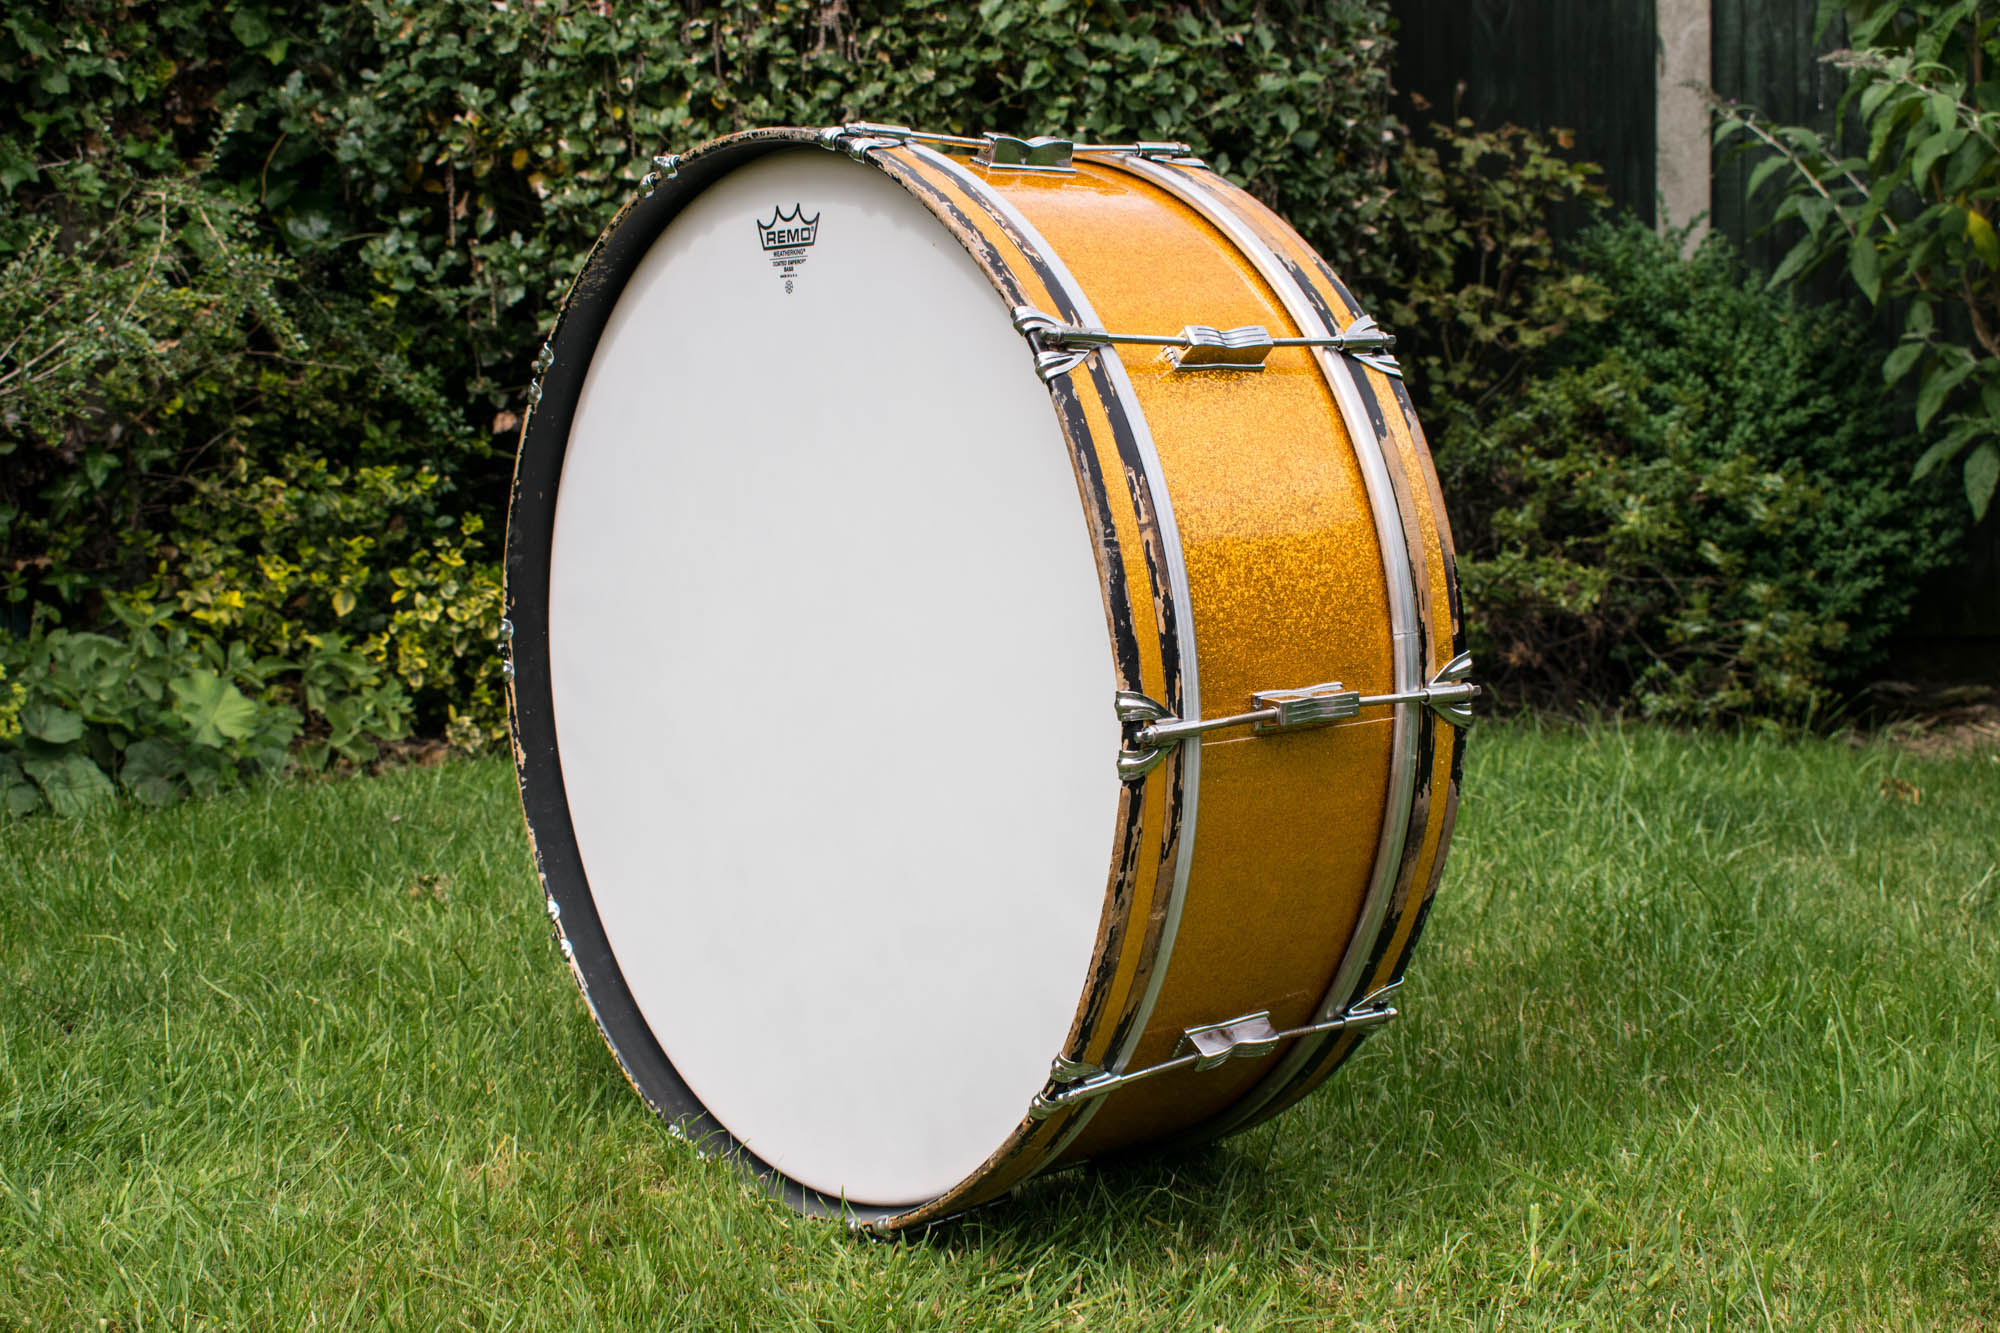 vintage 1959 ludwig 39 scotch 39 26x8 marching bass drum in gold sparkle more drums. Black Bedroom Furniture Sets. Home Design Ideas